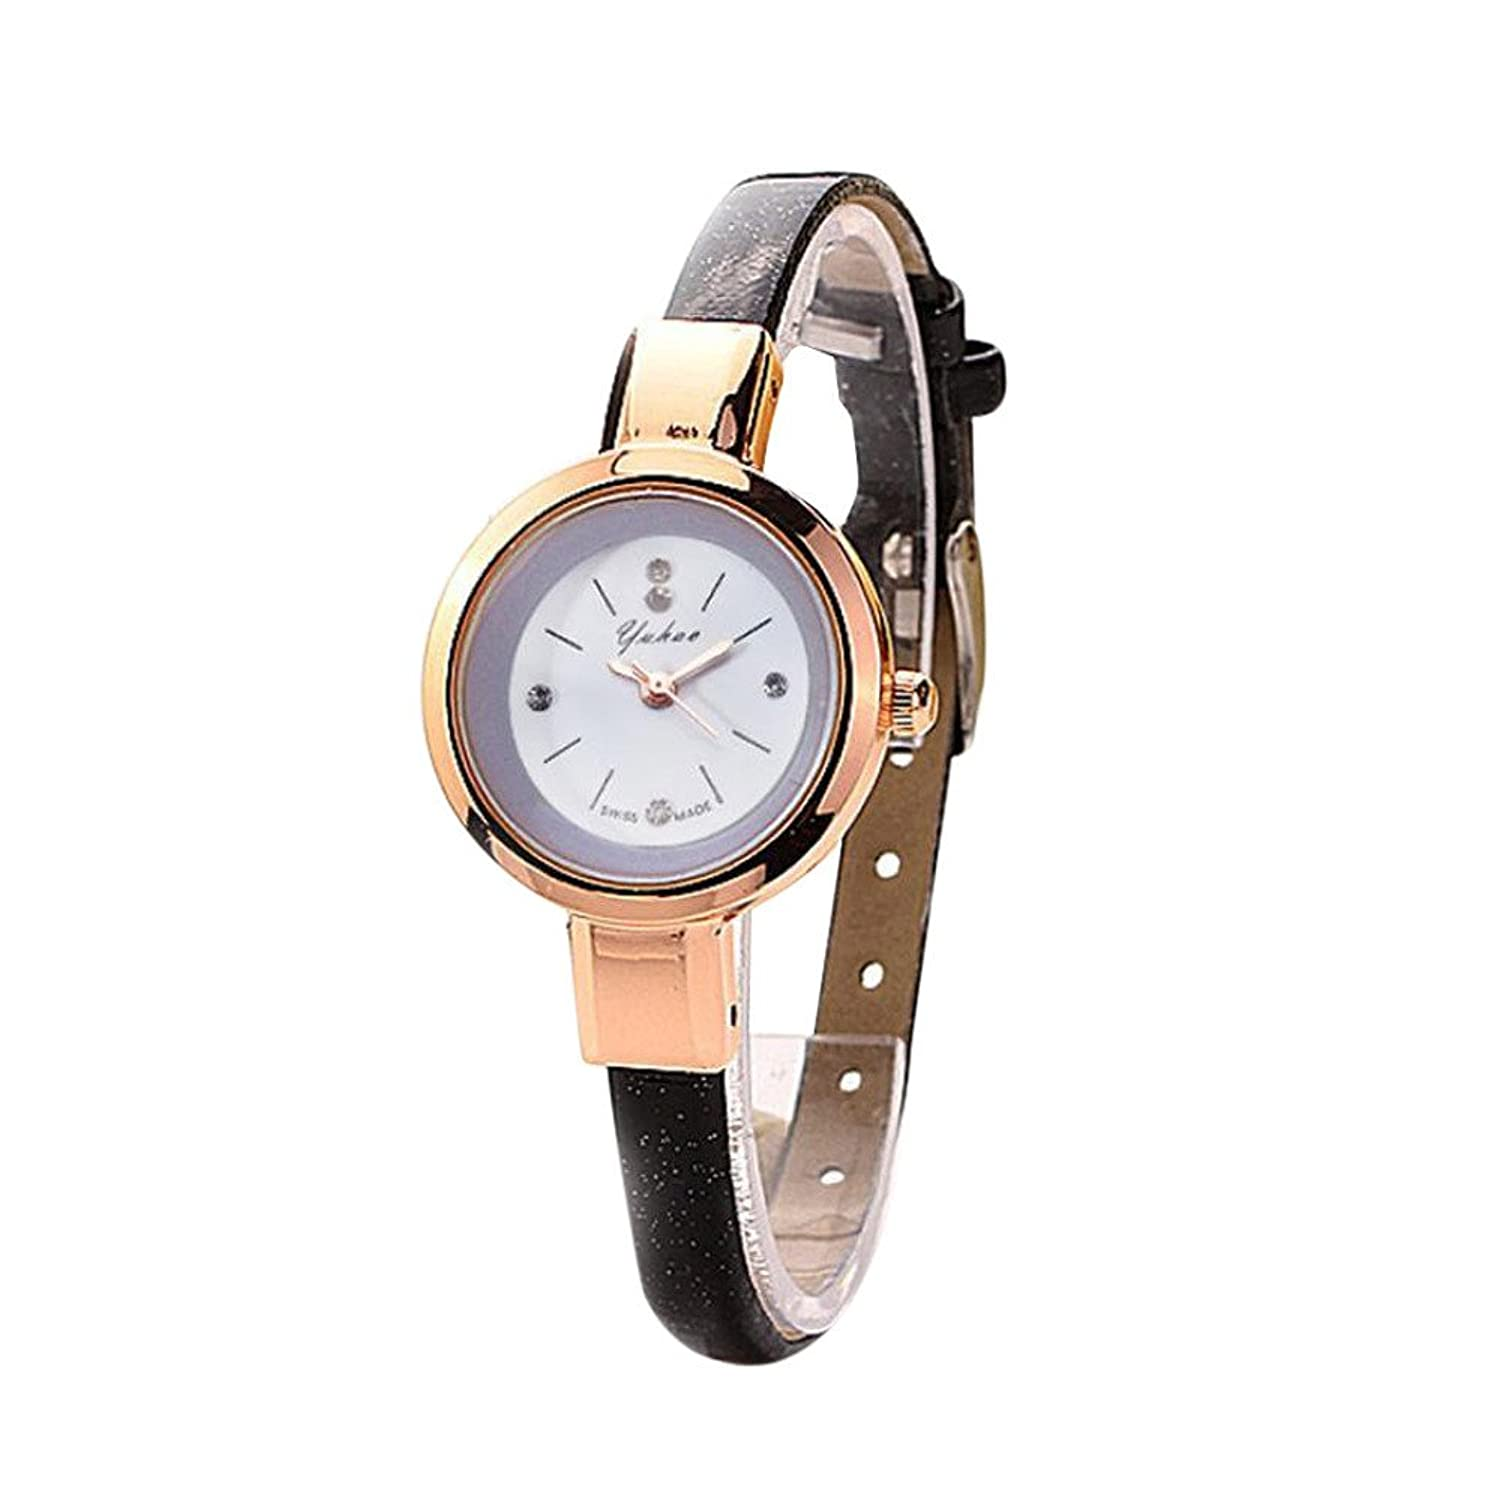 Amazon.com: Dressin Womens Quartz Watch,Fashion Leather Band Analog Bracelet Wrist Watch,Ladies Dress Watch,Geneva Watch (Black): Clothing